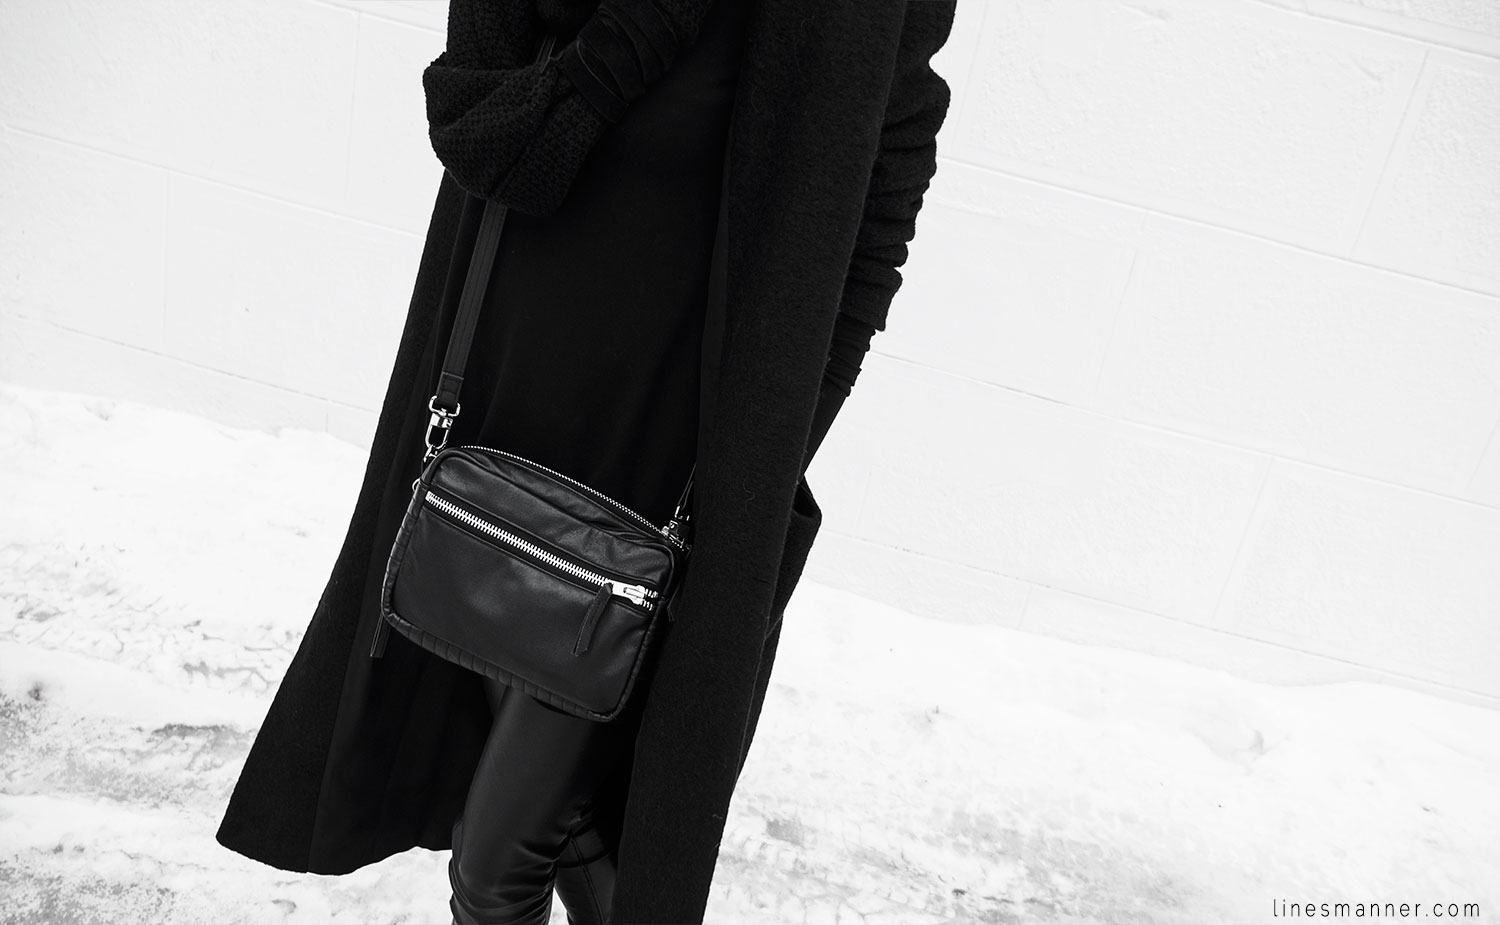 Lines-Manner-All_black_everything-monochrome-essentials-oversize-fit-textures-minimal-details-basics-staples-kayering-bundled-enveloped-silver-leather-13